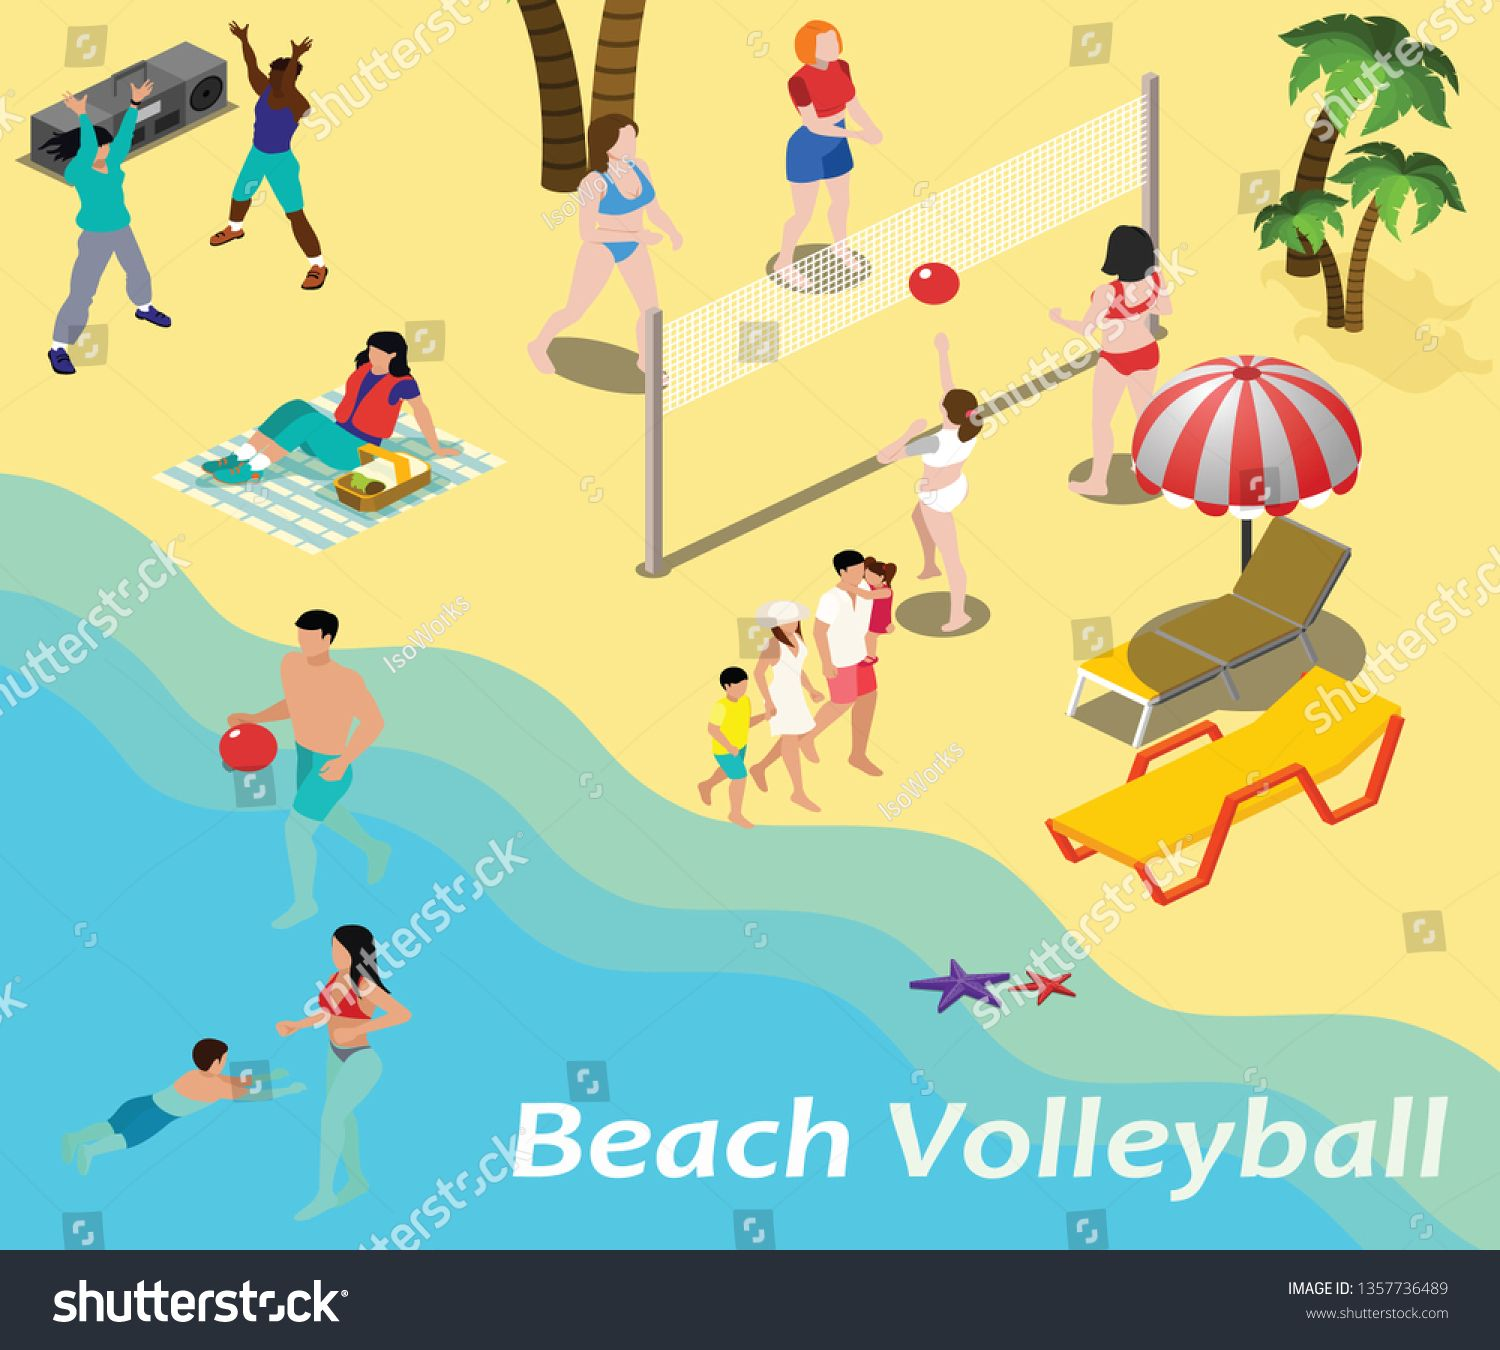 Isometric Artwork Concept Of Beach Volleyball Where Kids And Adults Are Playing Volleyball In Sand Ad Sponsored Beach Artwork Isometric Play Volleyball